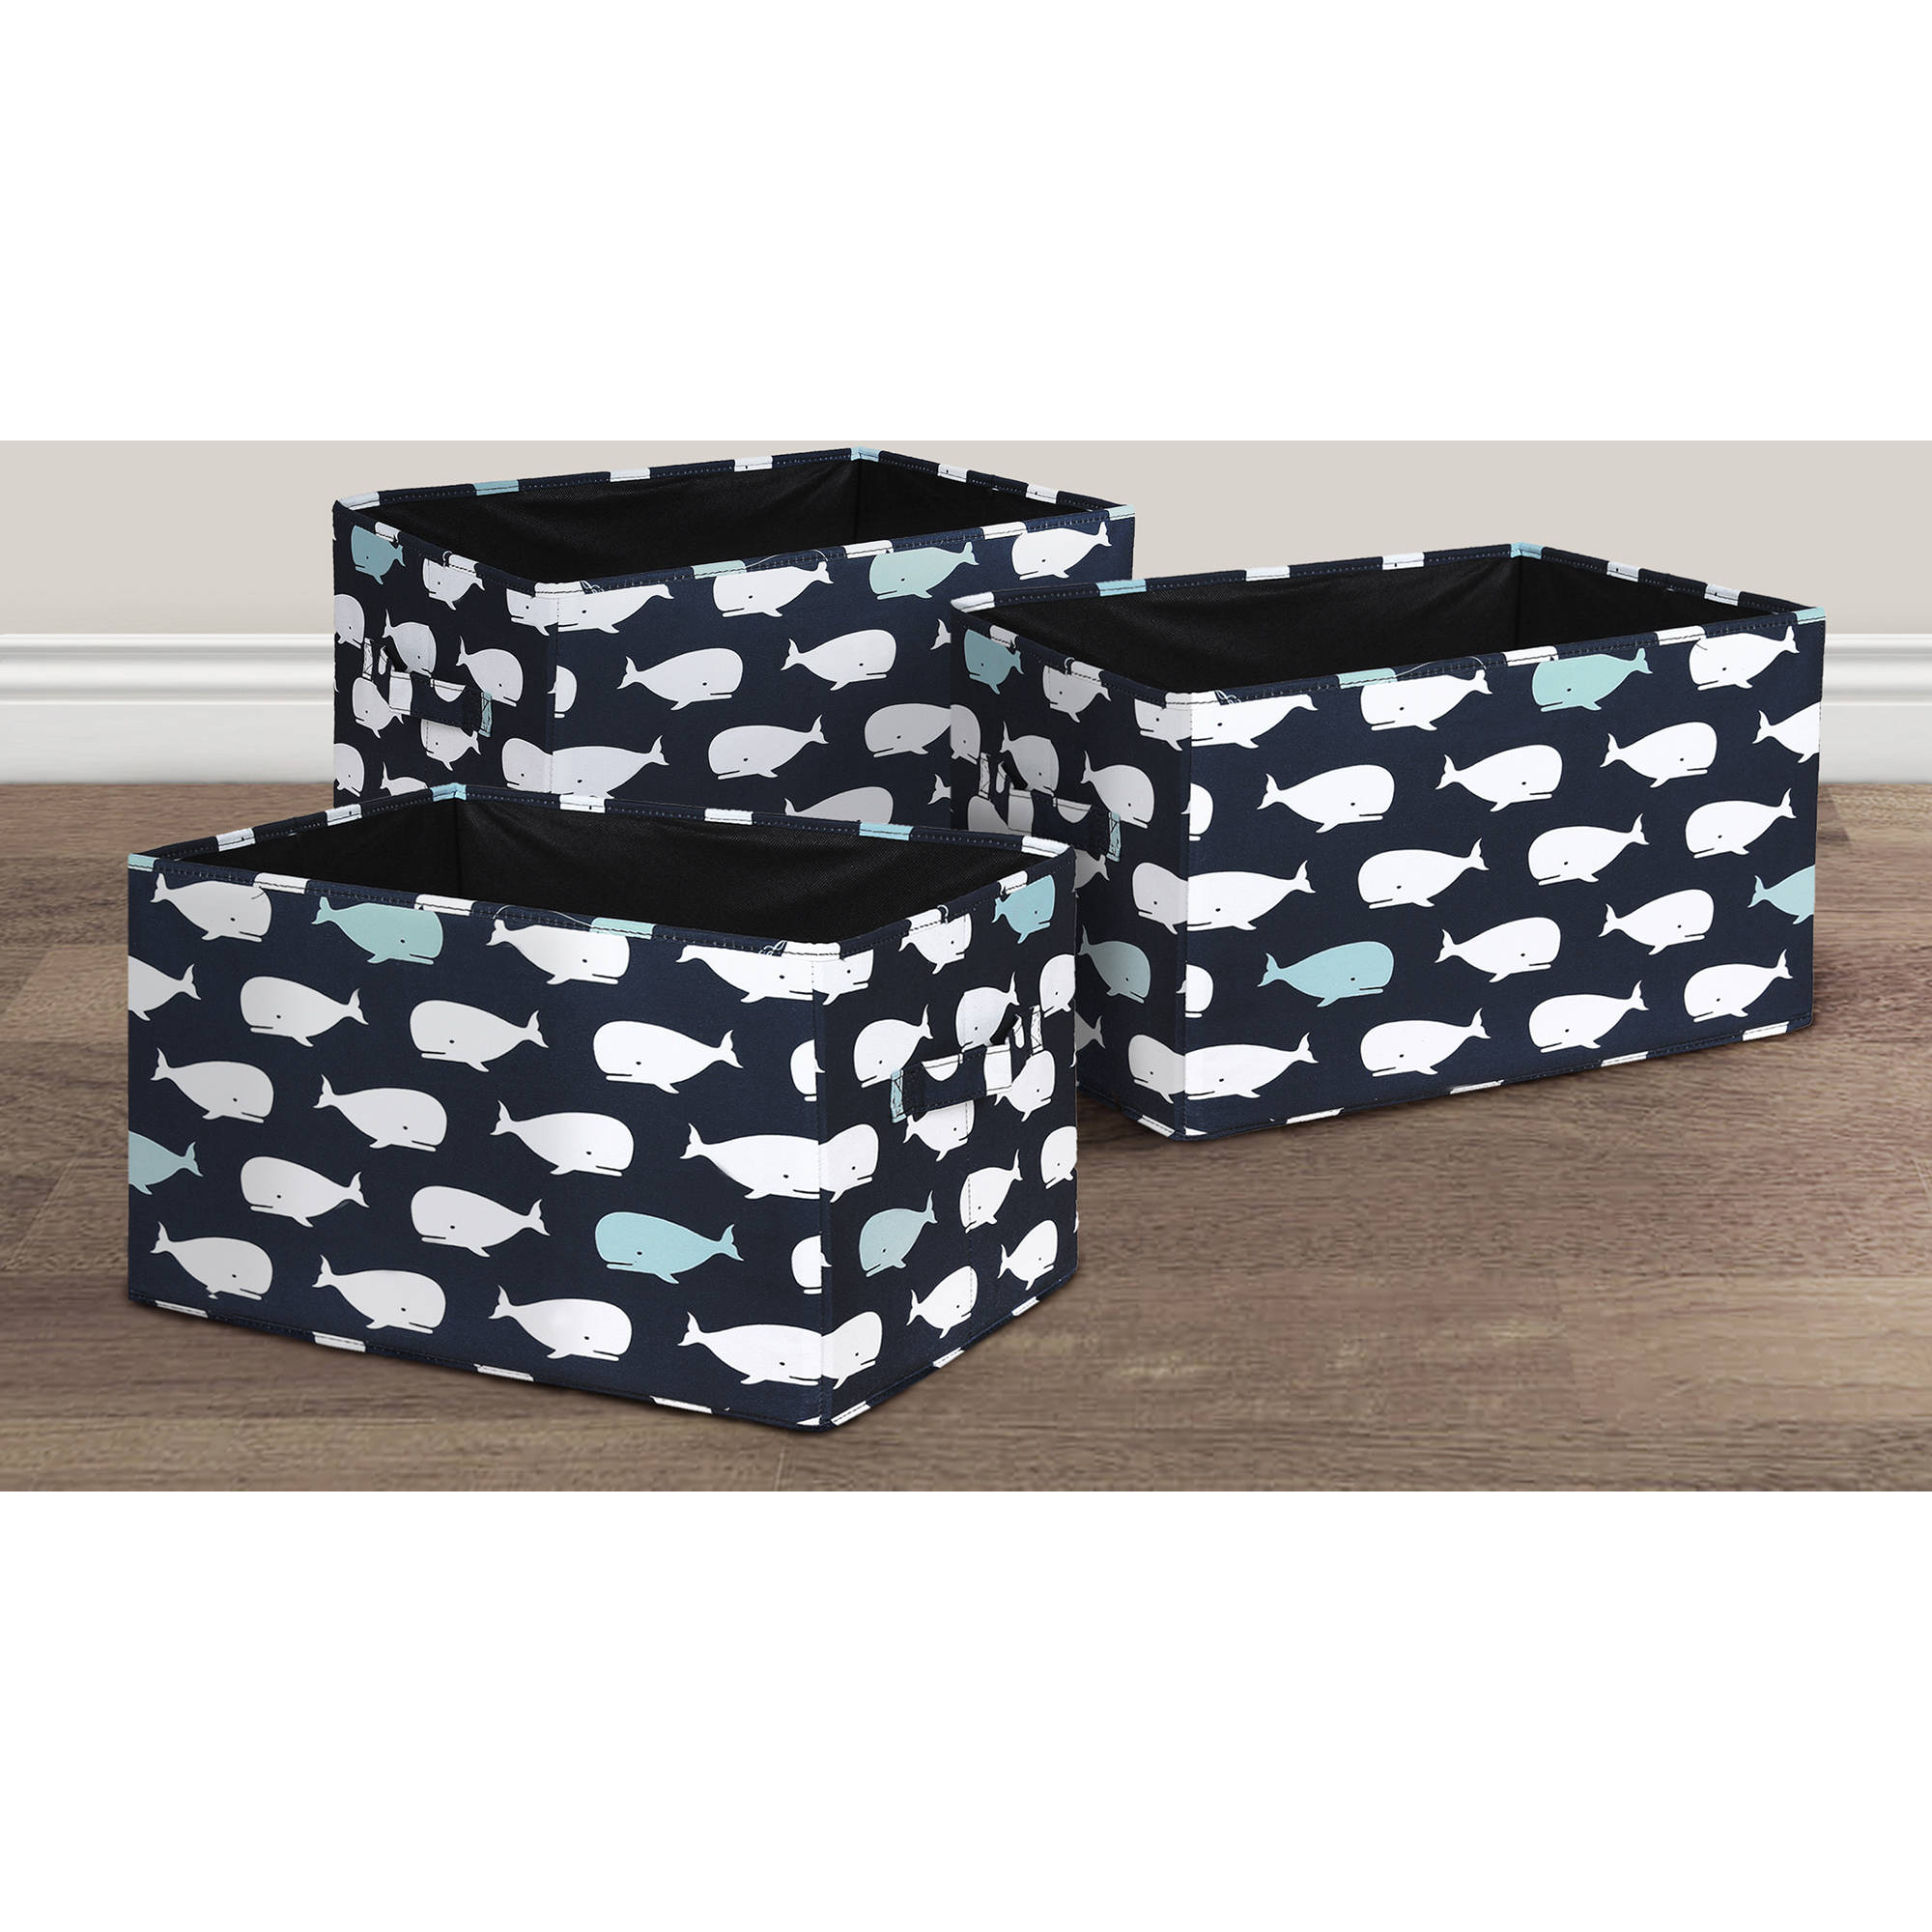 Whale Fabric Covered Collapsible Box Pink 3-Piece Set